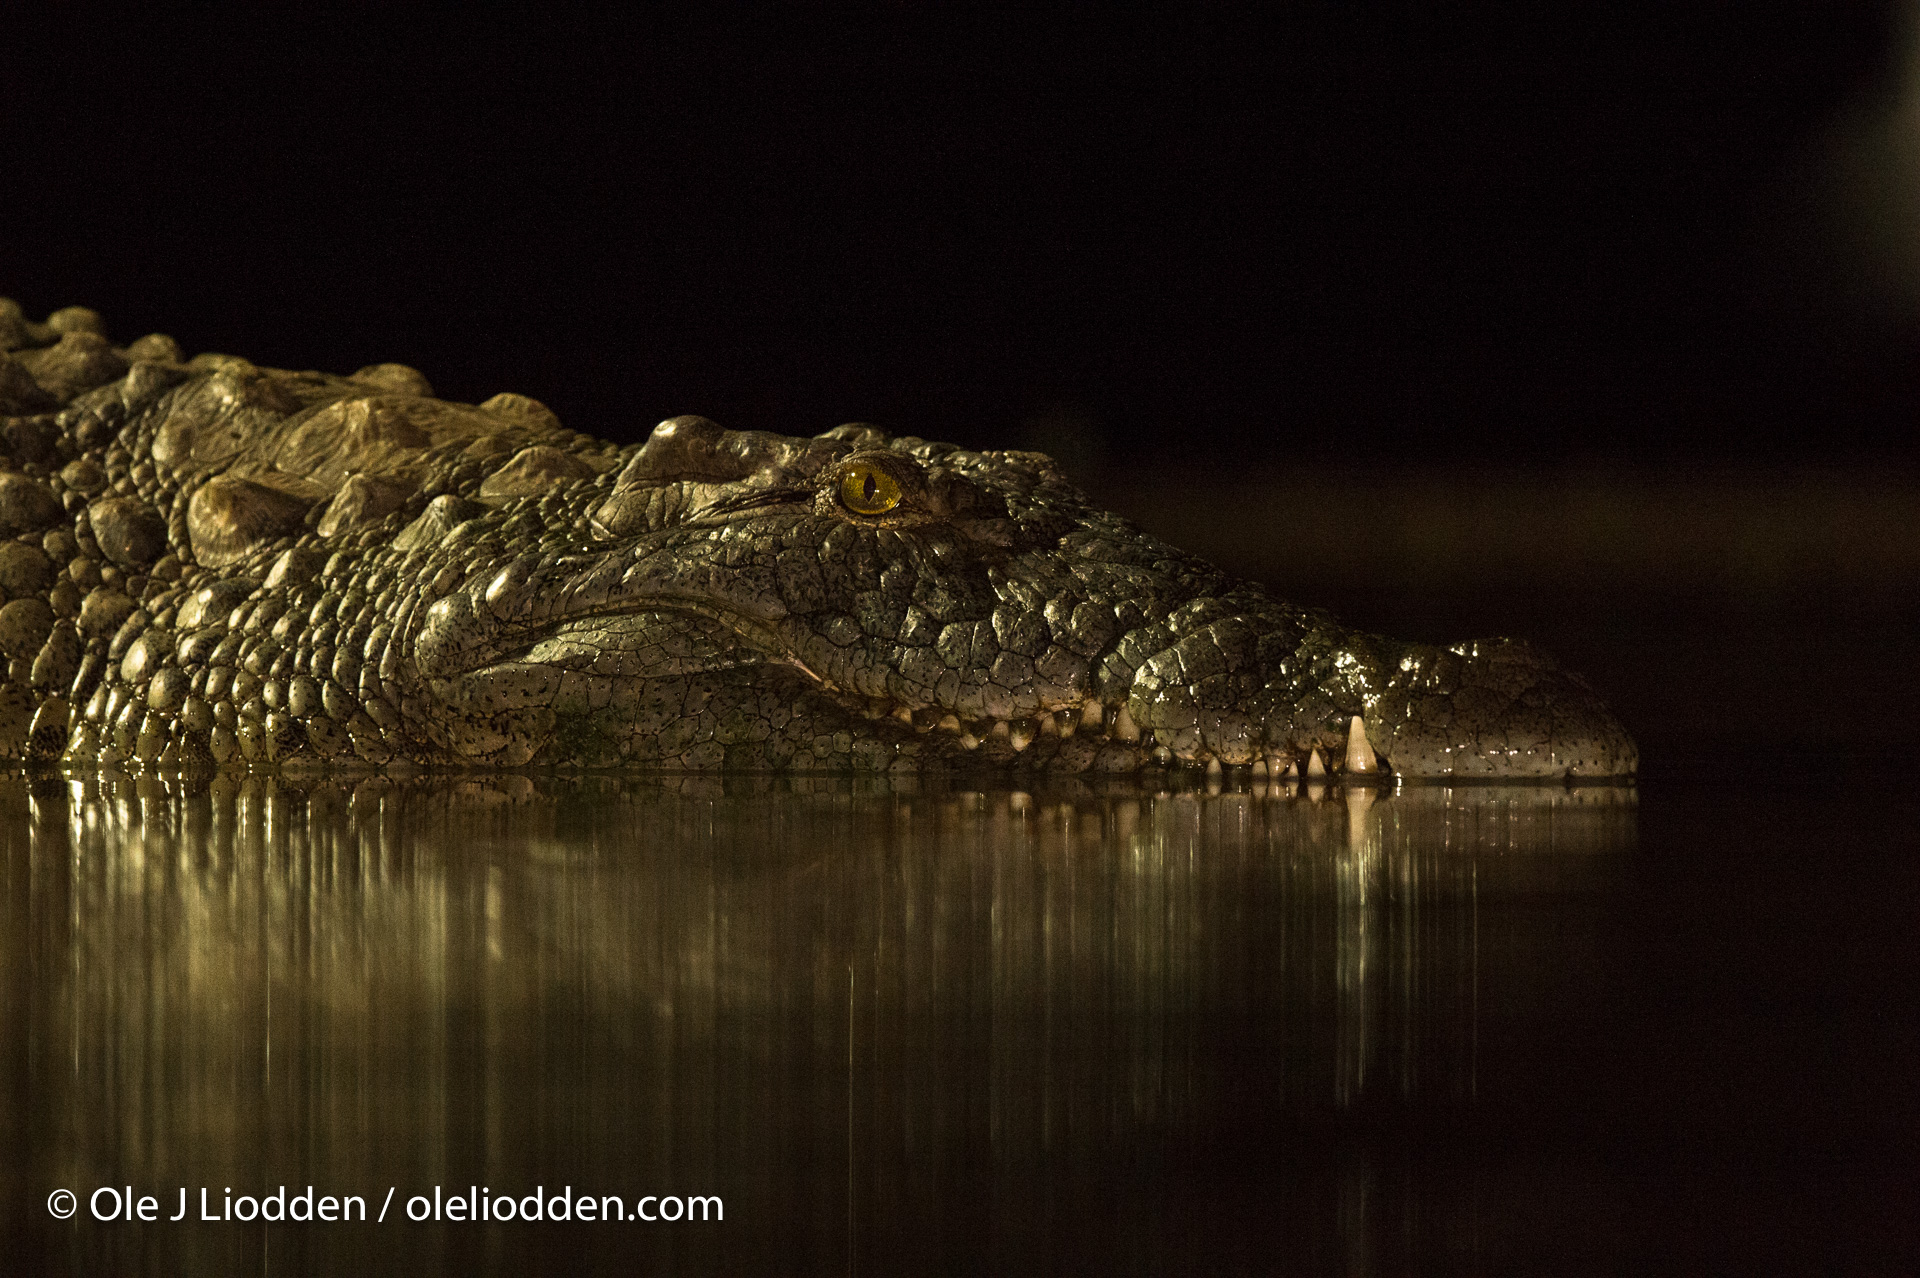 Crocodile at nigh